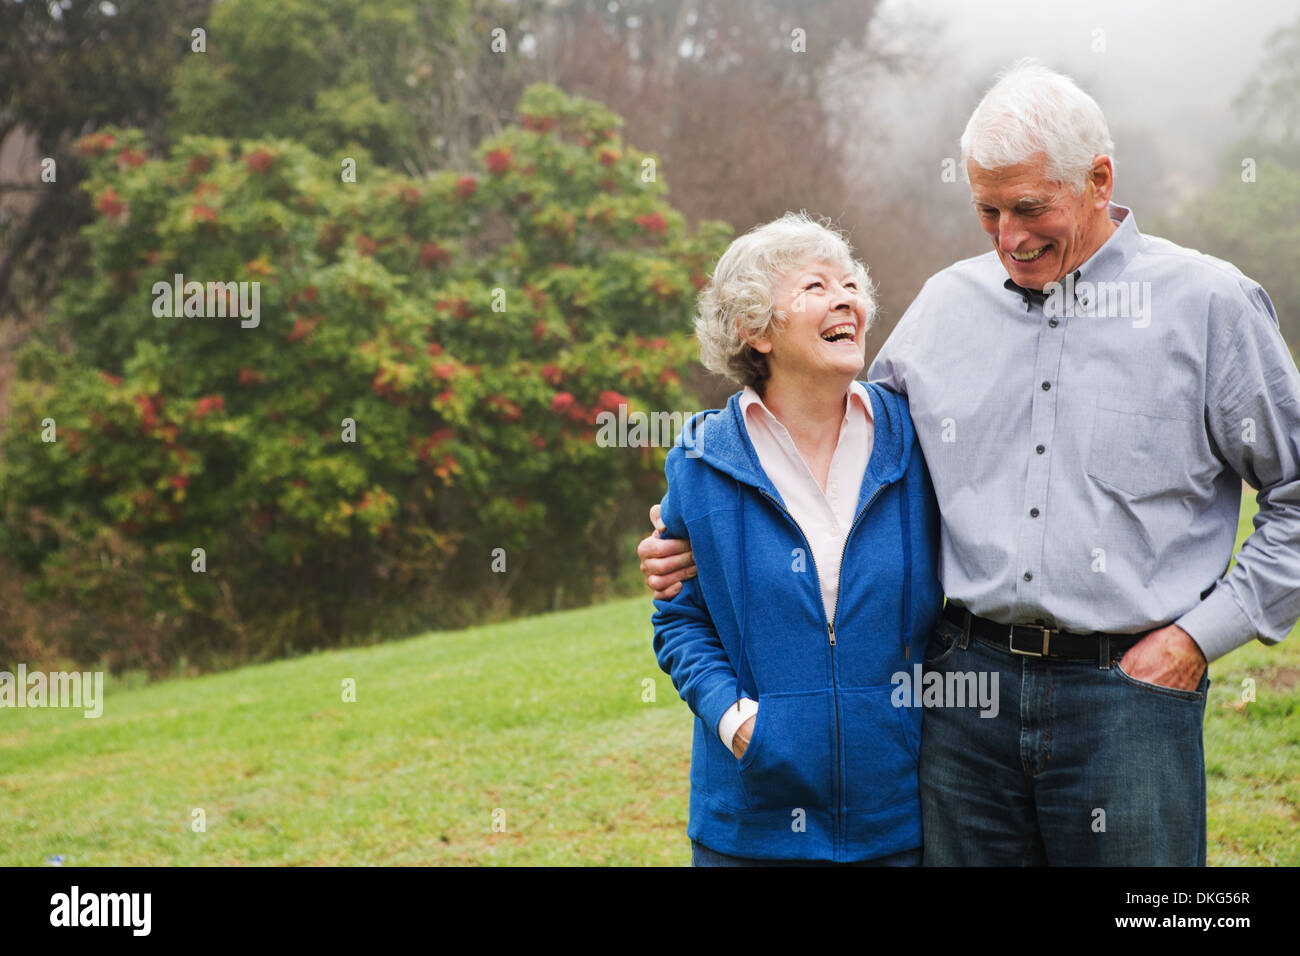 Husband and wife enjoying day out - Stock Image